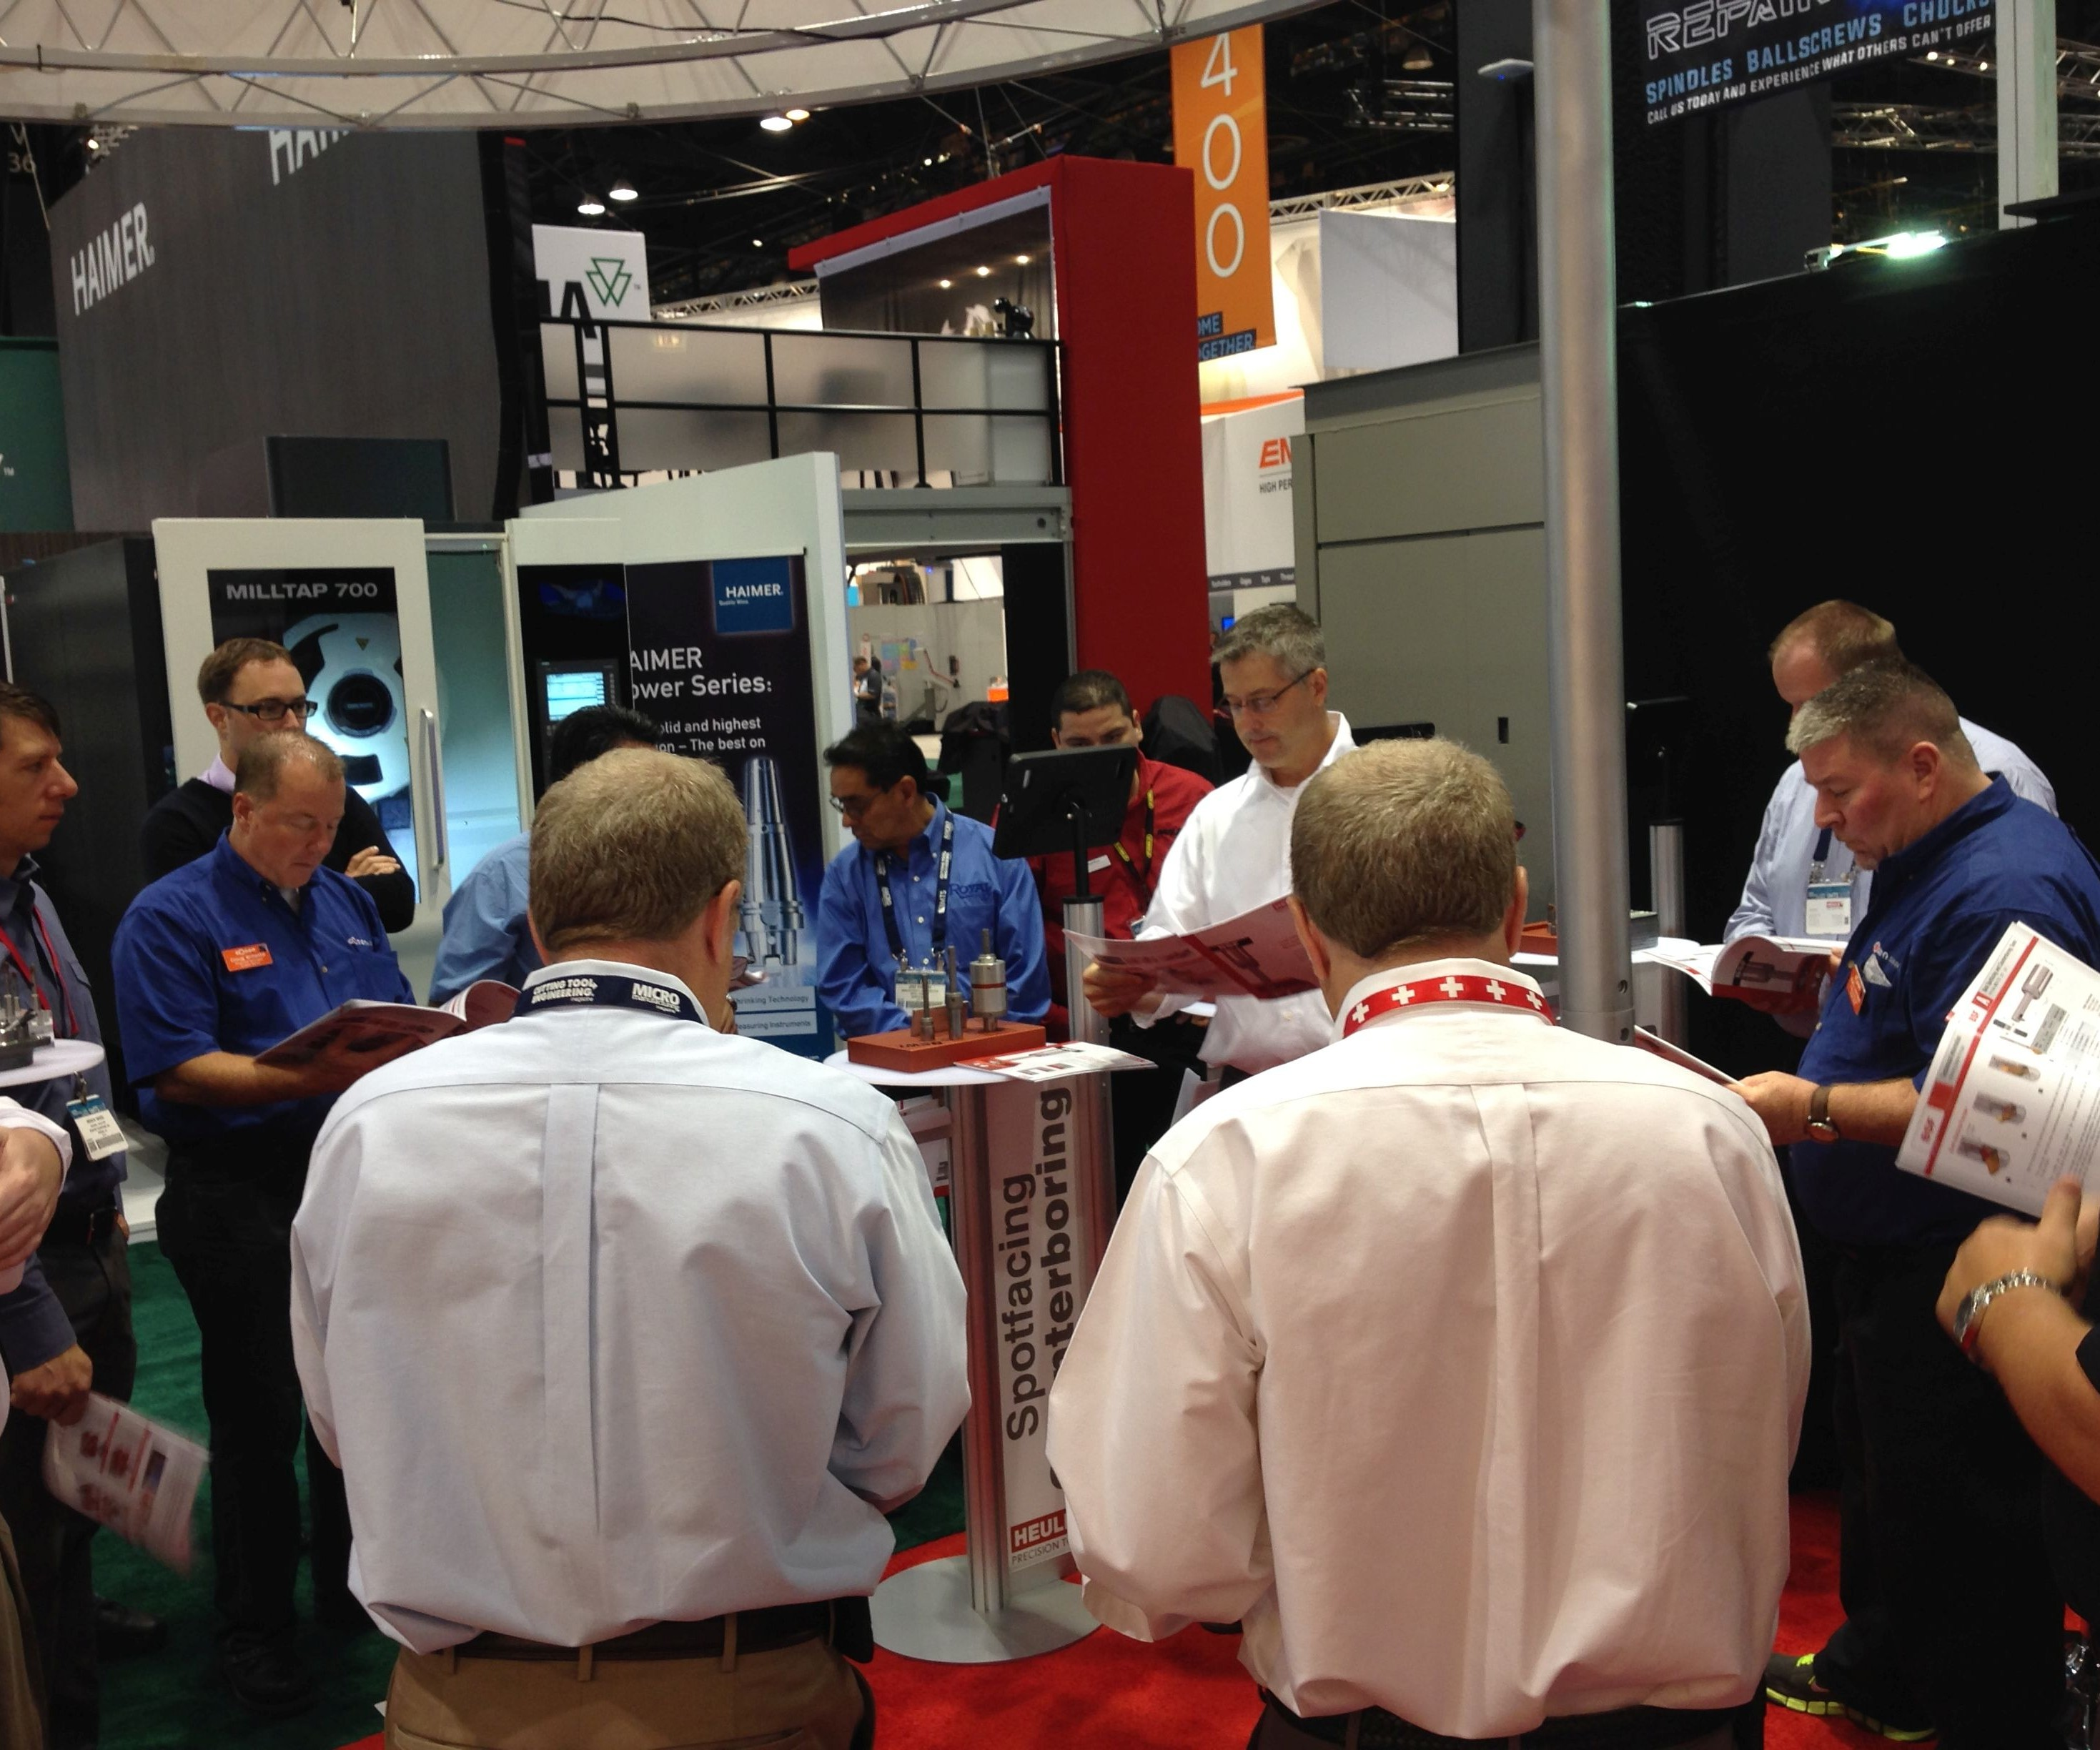 Gary Brown speaking to a group of sales agents at the Heule booth